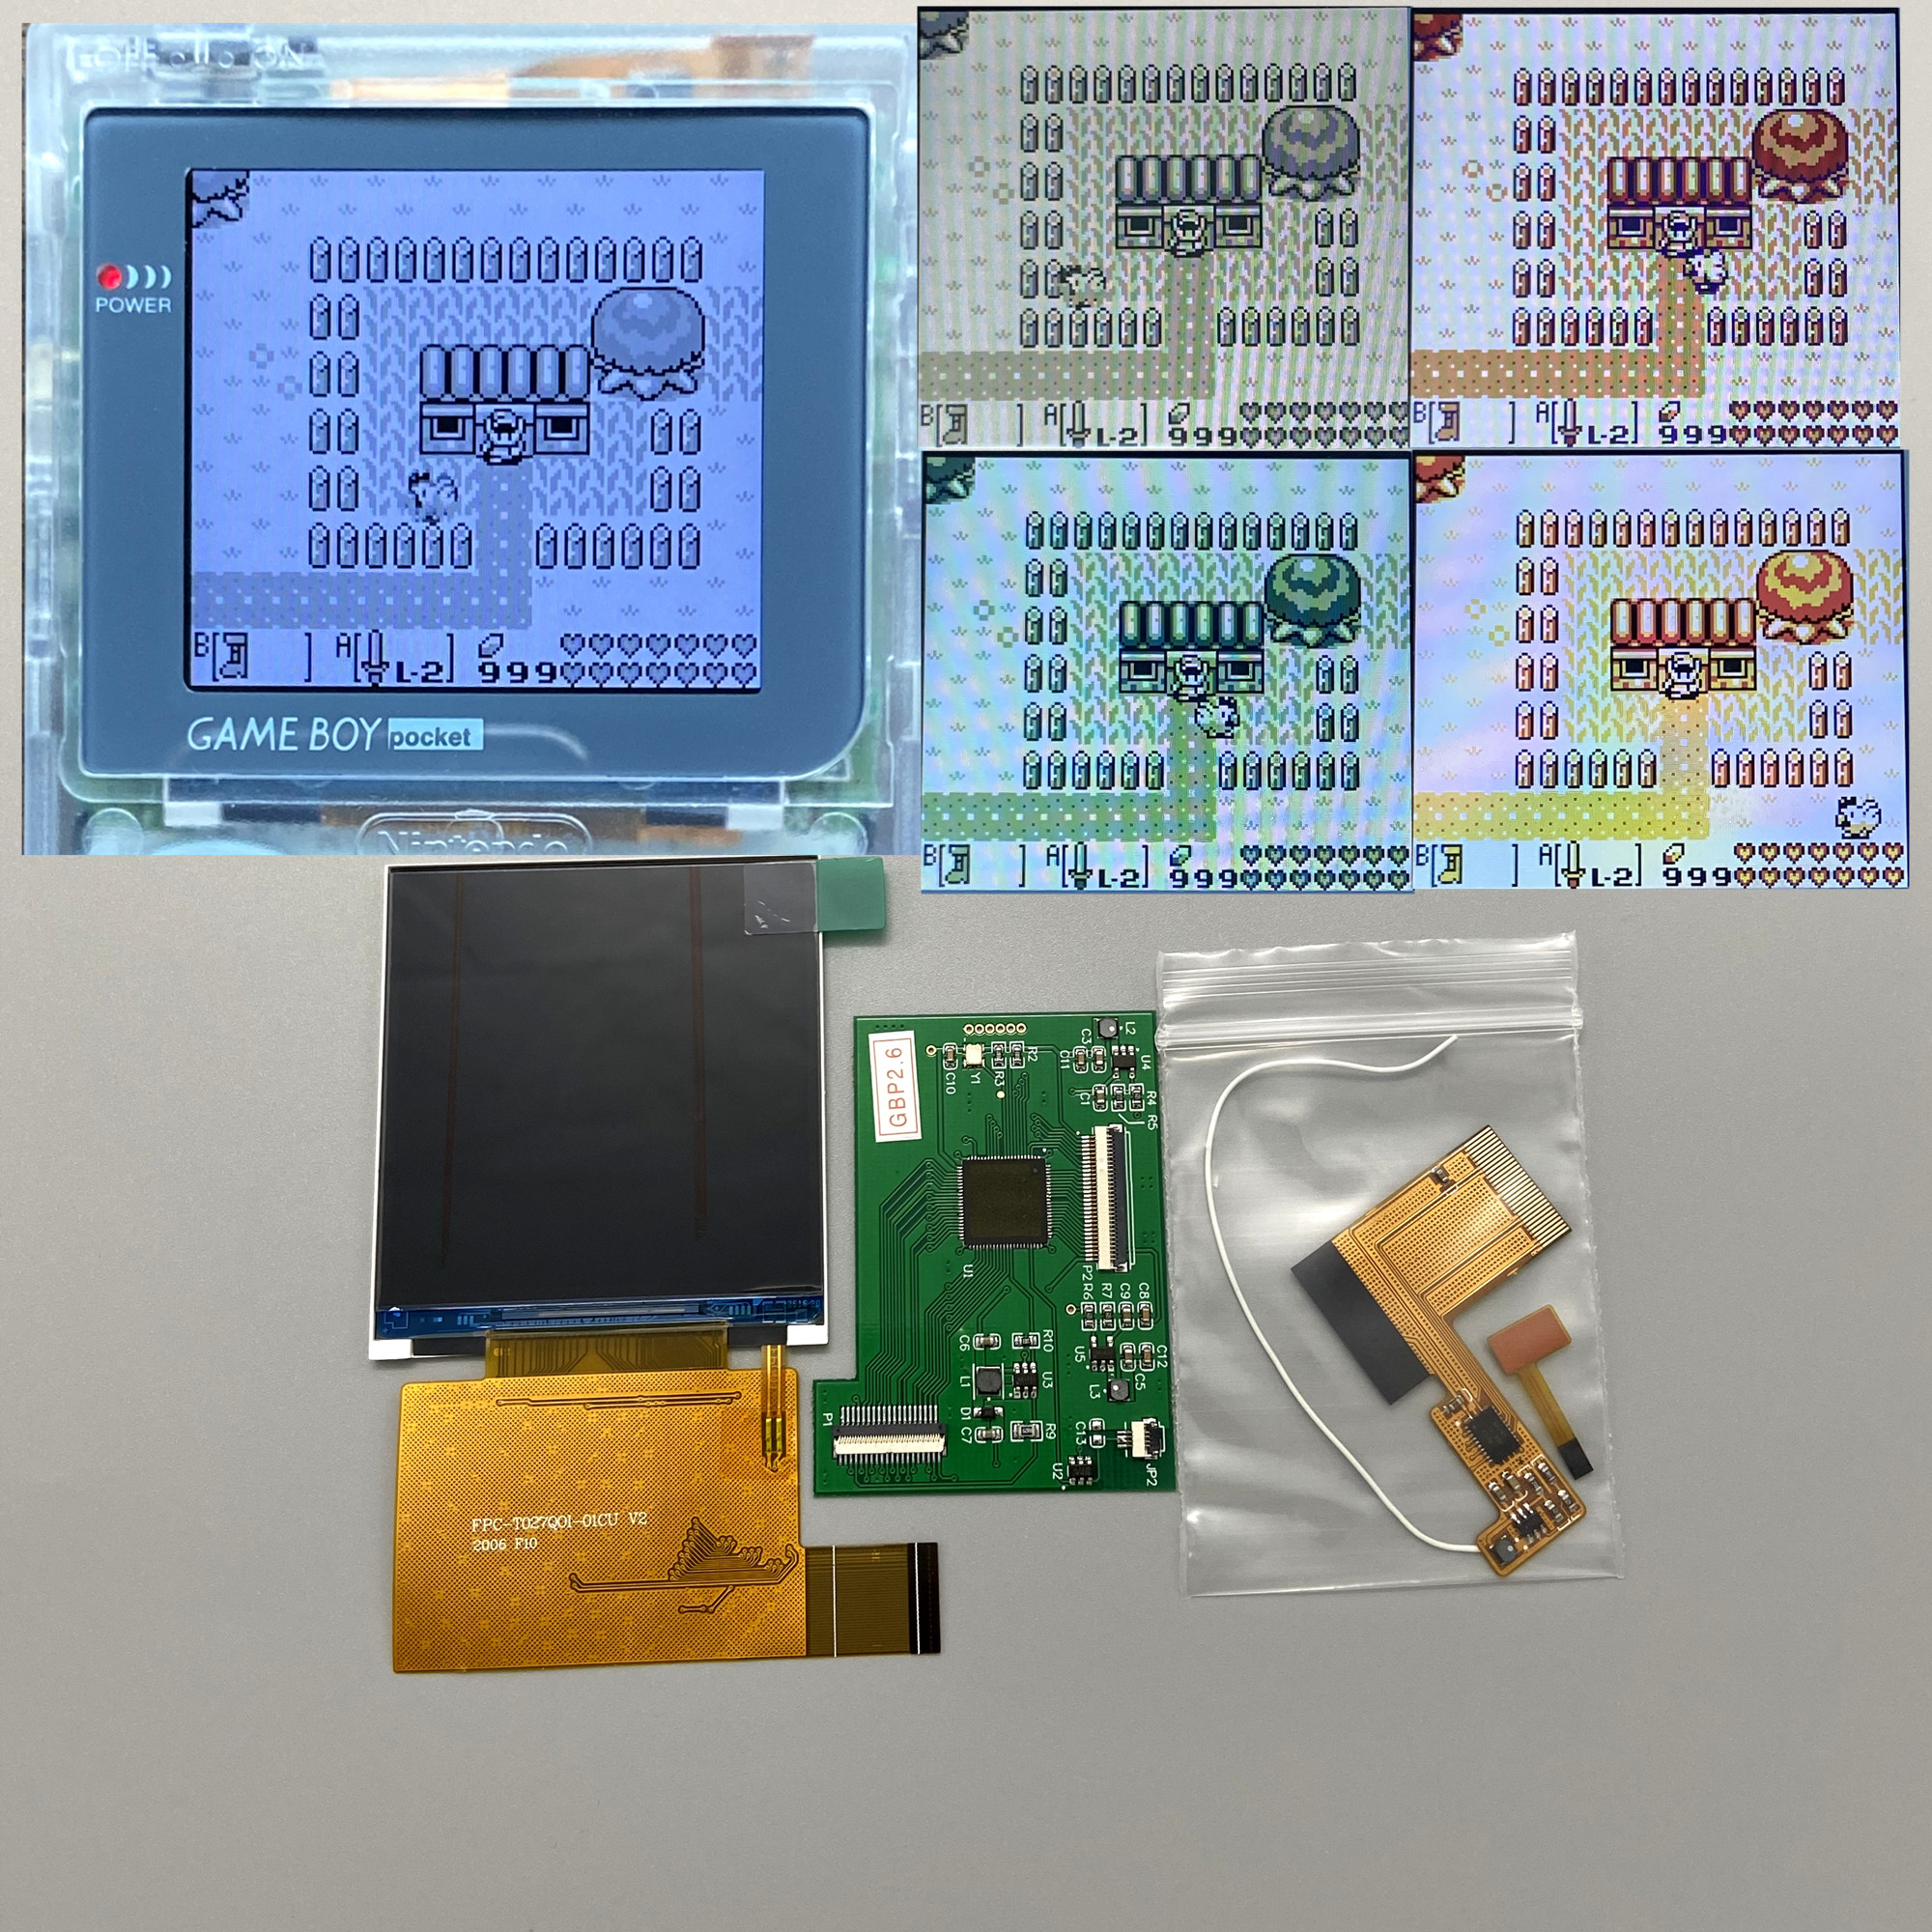 Easy to install 2 6 inchoriginal size IPS high brightness LCD screen is suitable for Nintendo Gameboy pocket GBP